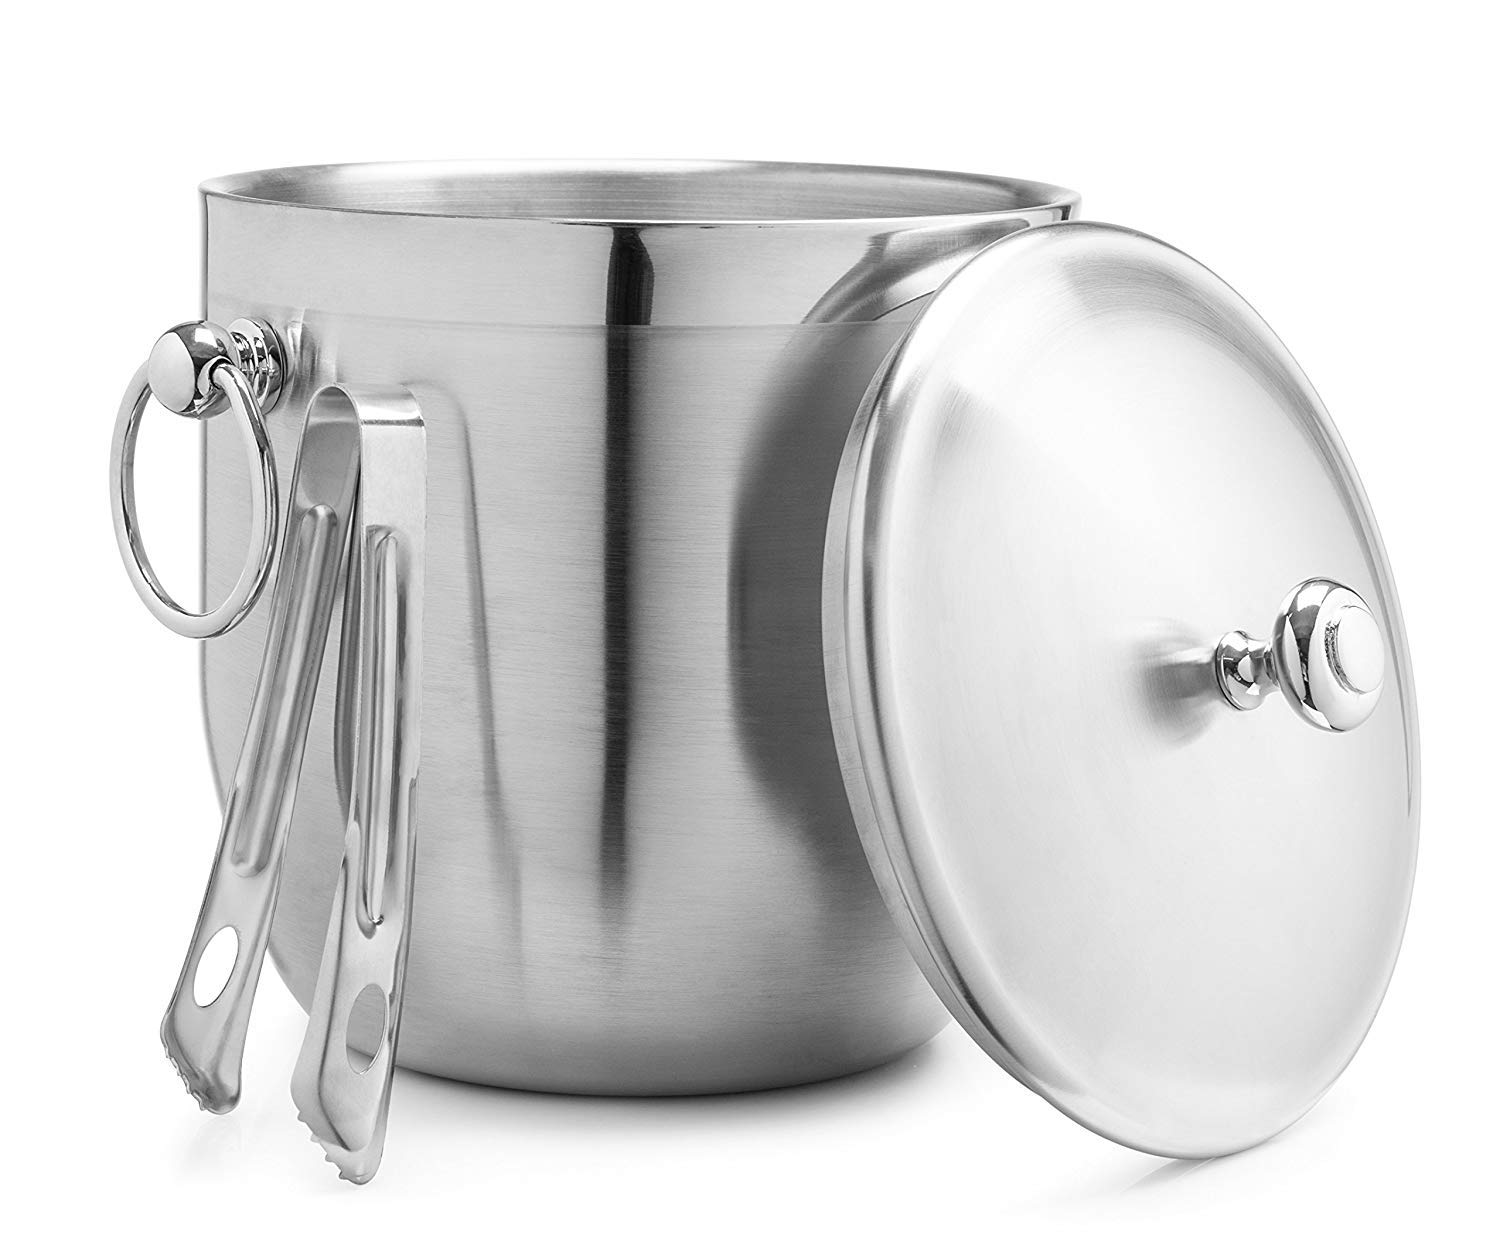 Bellemain 3 Liter Insulated Stainless Steel Ice Bucket with Bonus Ice Tongs by Bellemain